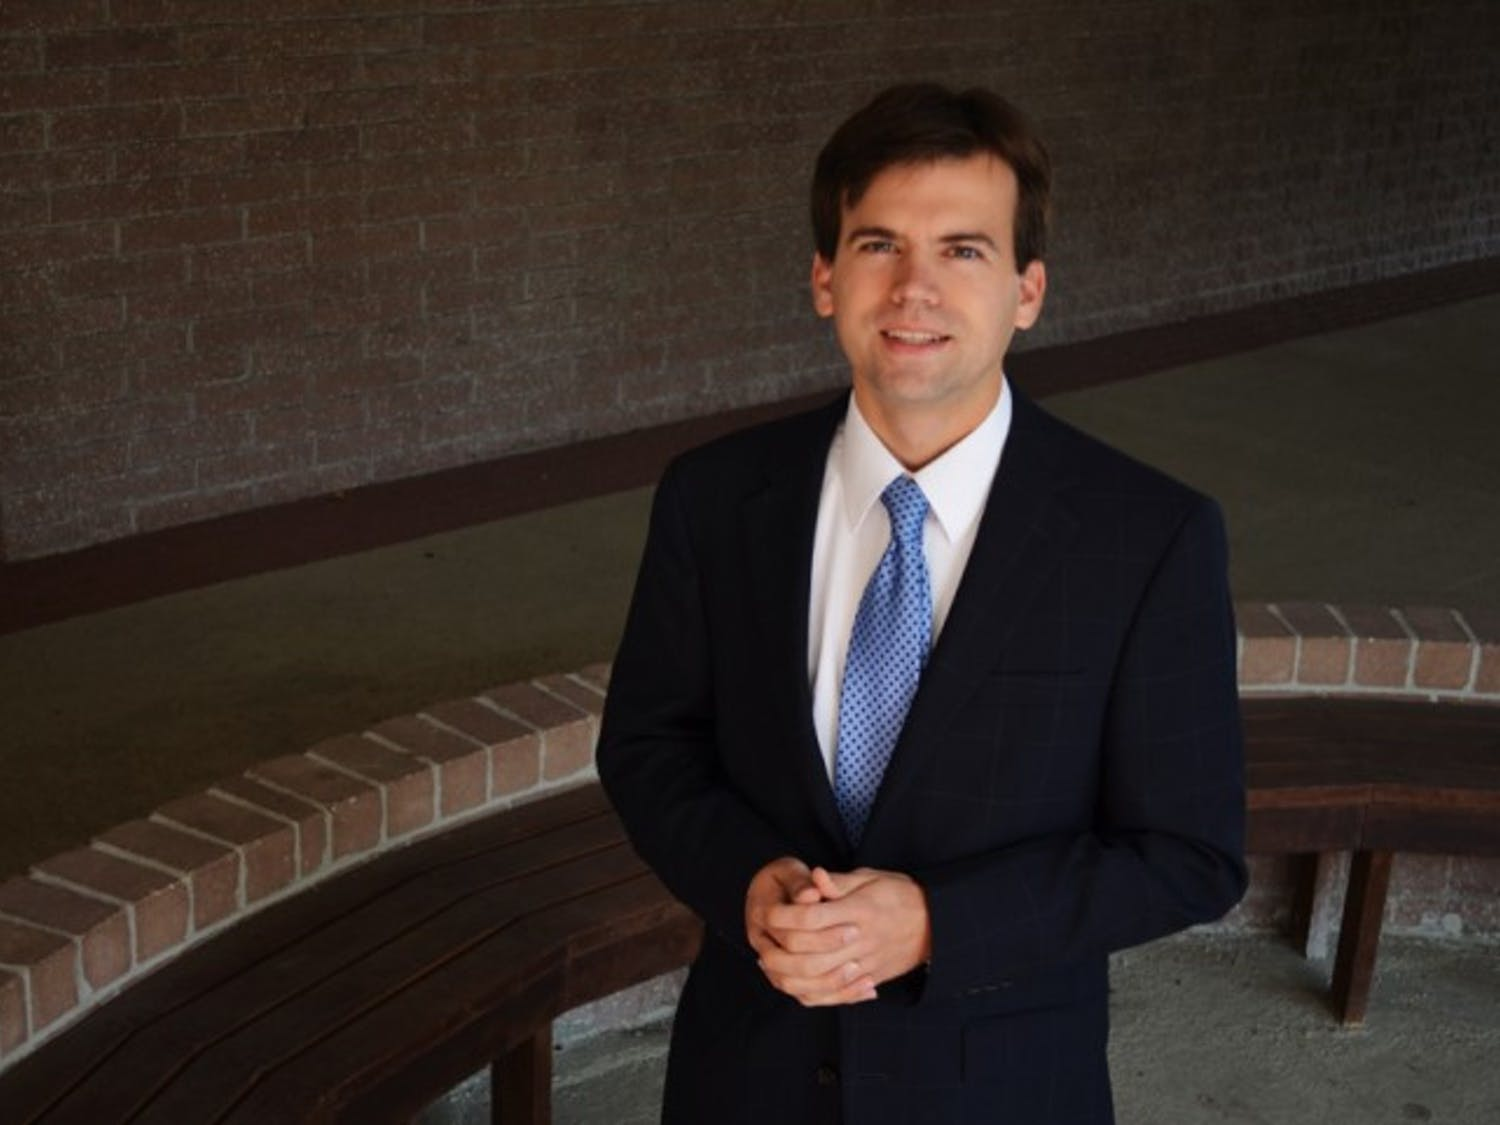 Andrew Morey, a UF Levin College of Law alumnus, plans to focus on education and women's reproductive rights if elected to the state House of Representatives.